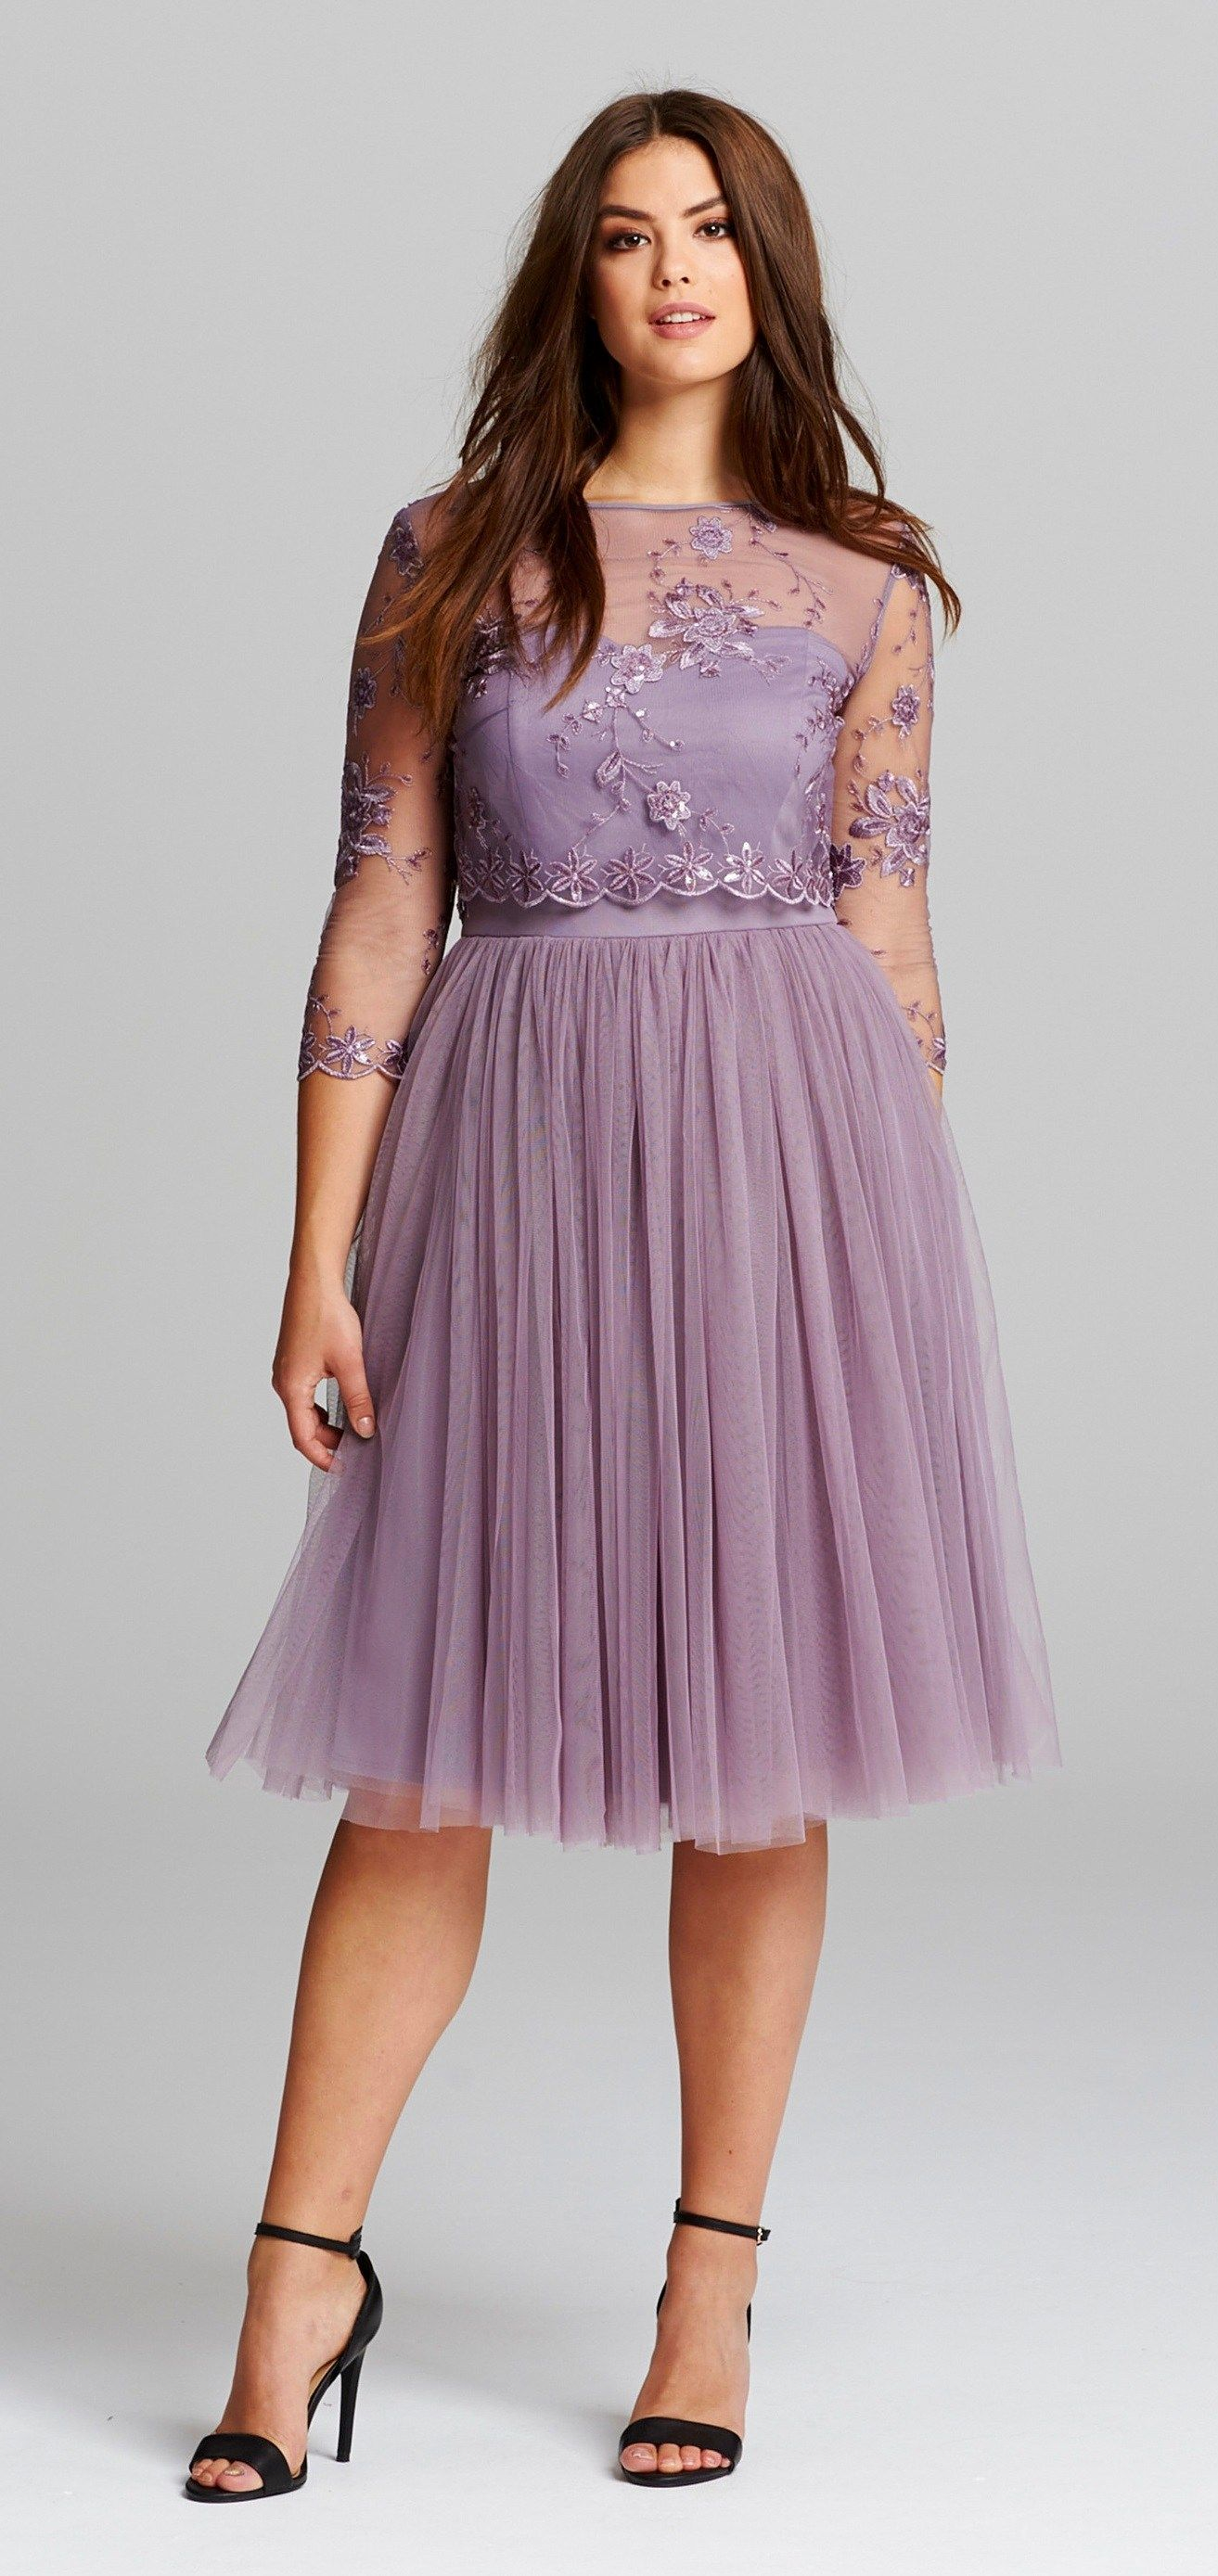 Plus Size Outfits For A Wedding Guest 50 Best Outfits Plus Size Long Dresses Plus Size Wedding Guest Dresses Plus Size Party Dresses [ 2778 x 1313 Pixel ]